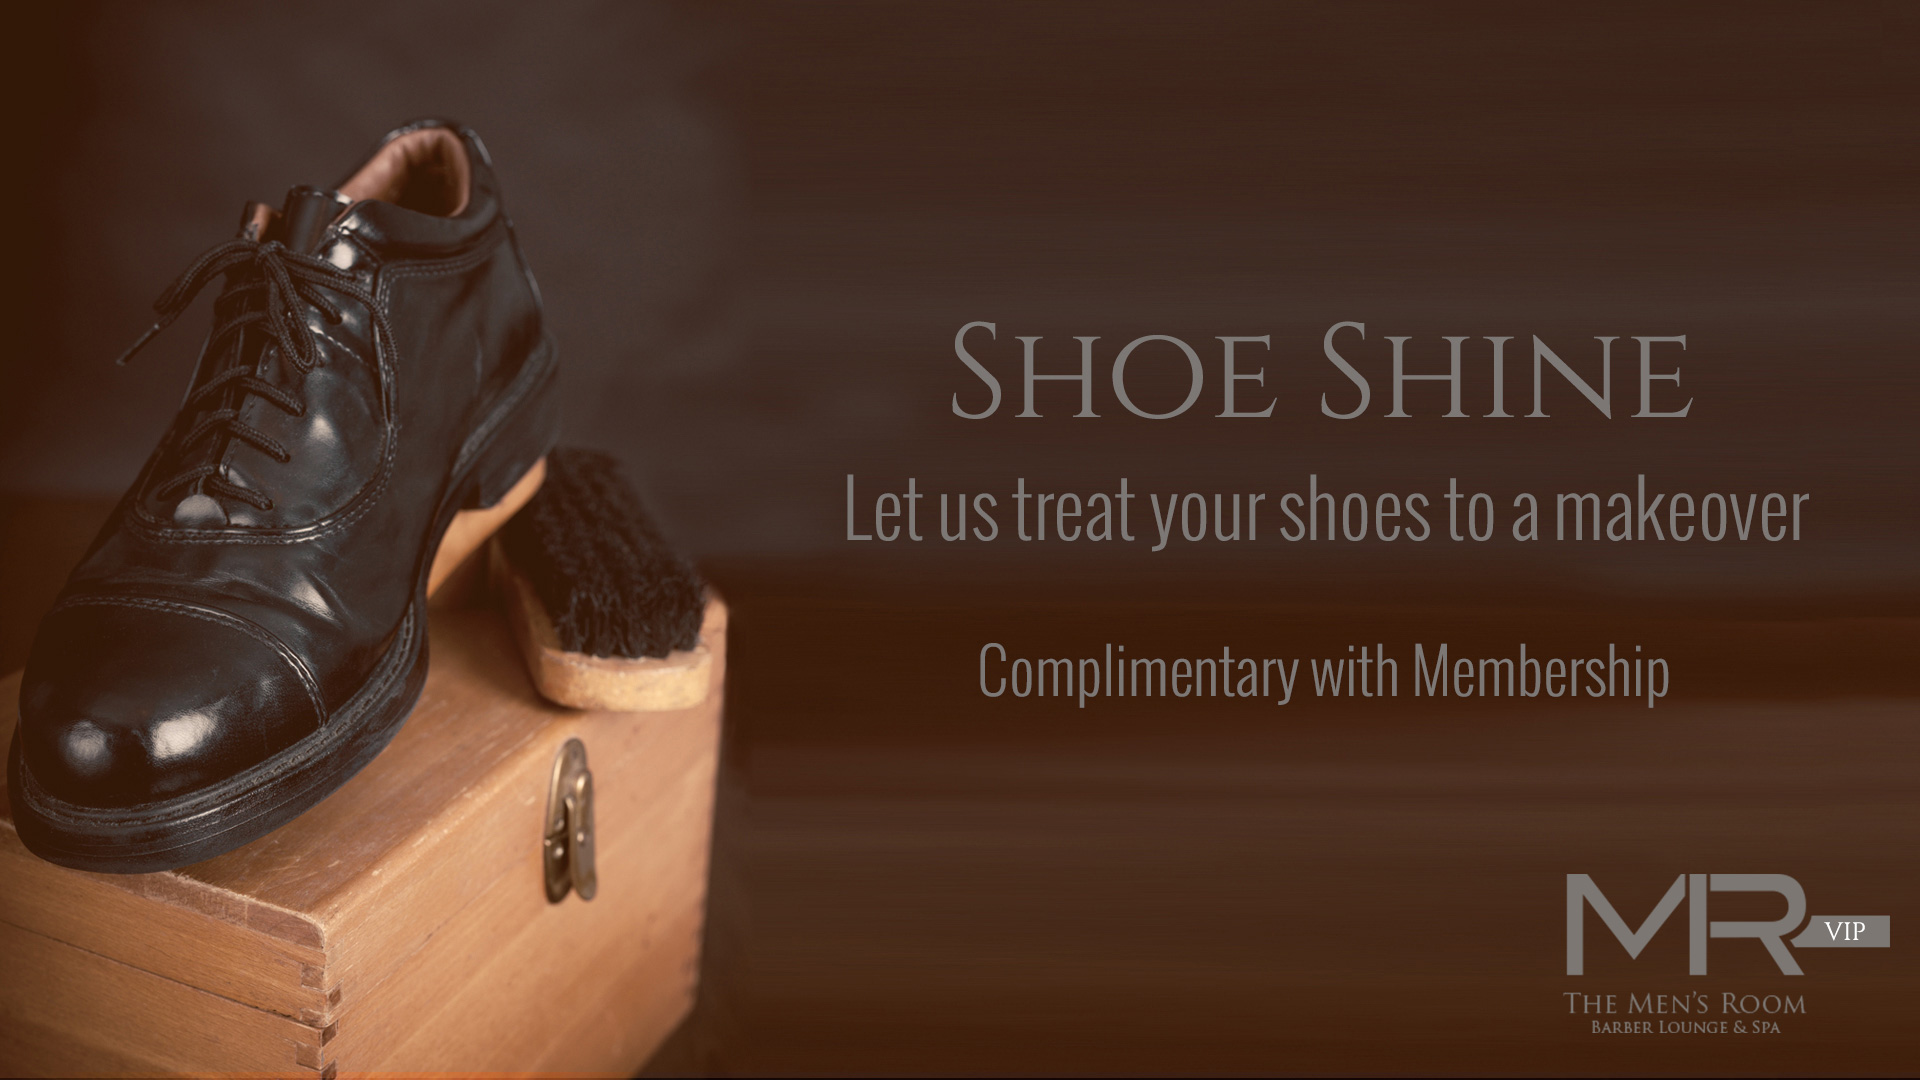 The Men's Room Barber Lounge & Spa Shoe Shine